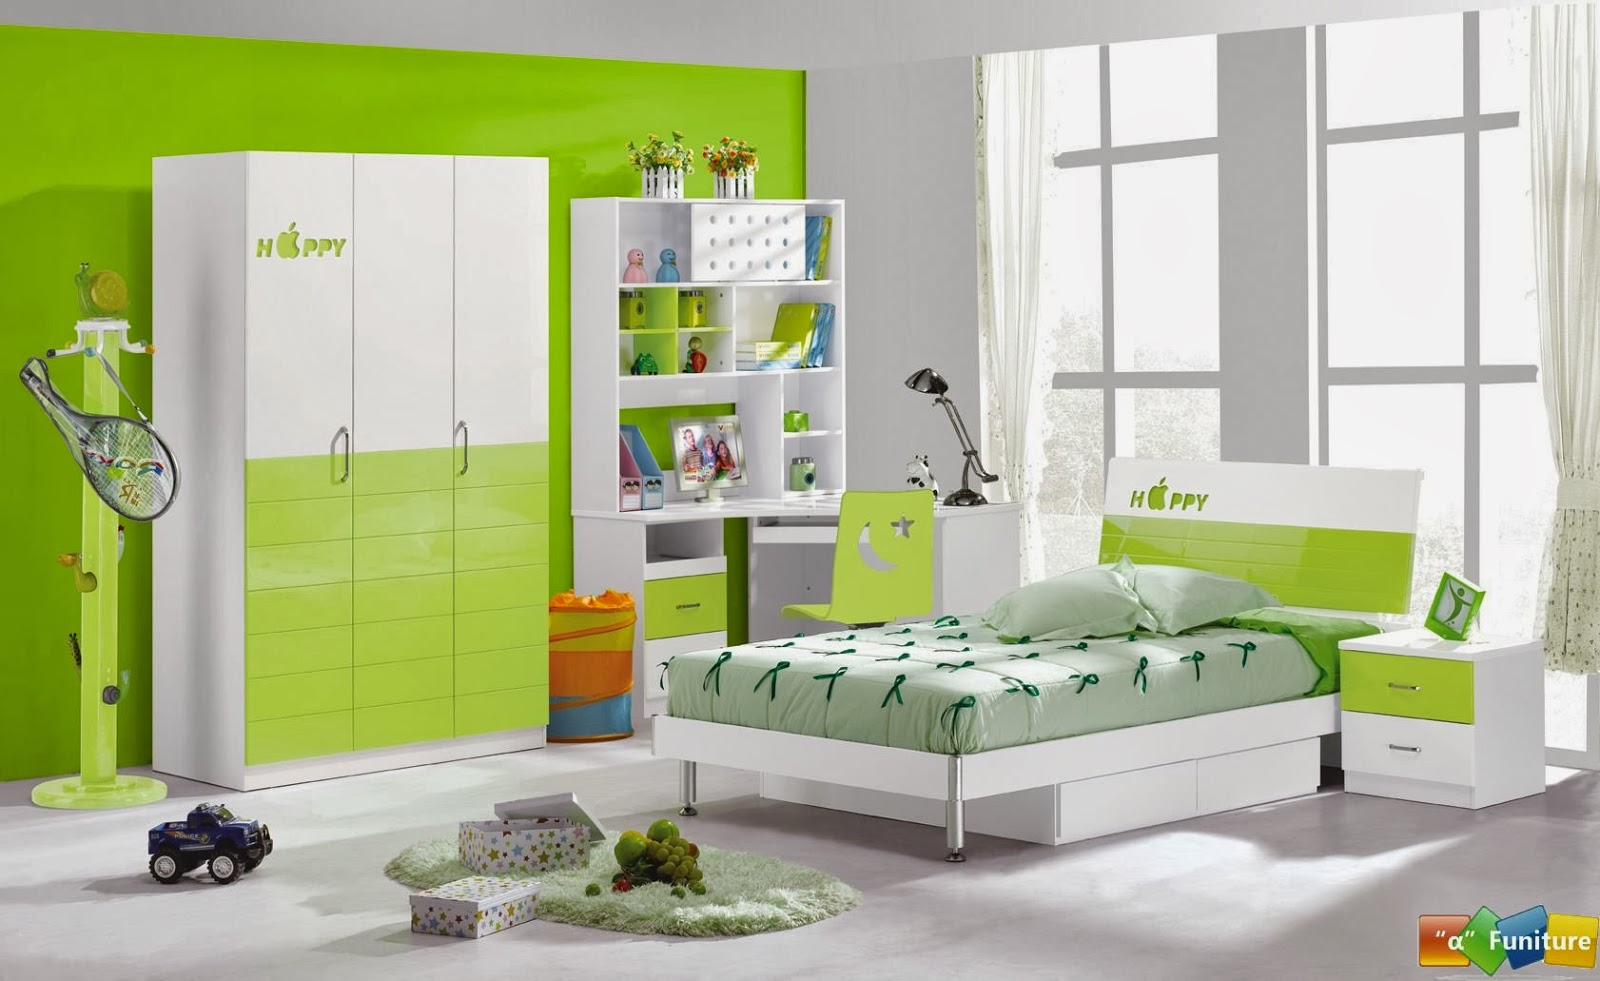 Kids Bedroom 2014 latest ideas for kids room decoration 2014 - housing mania